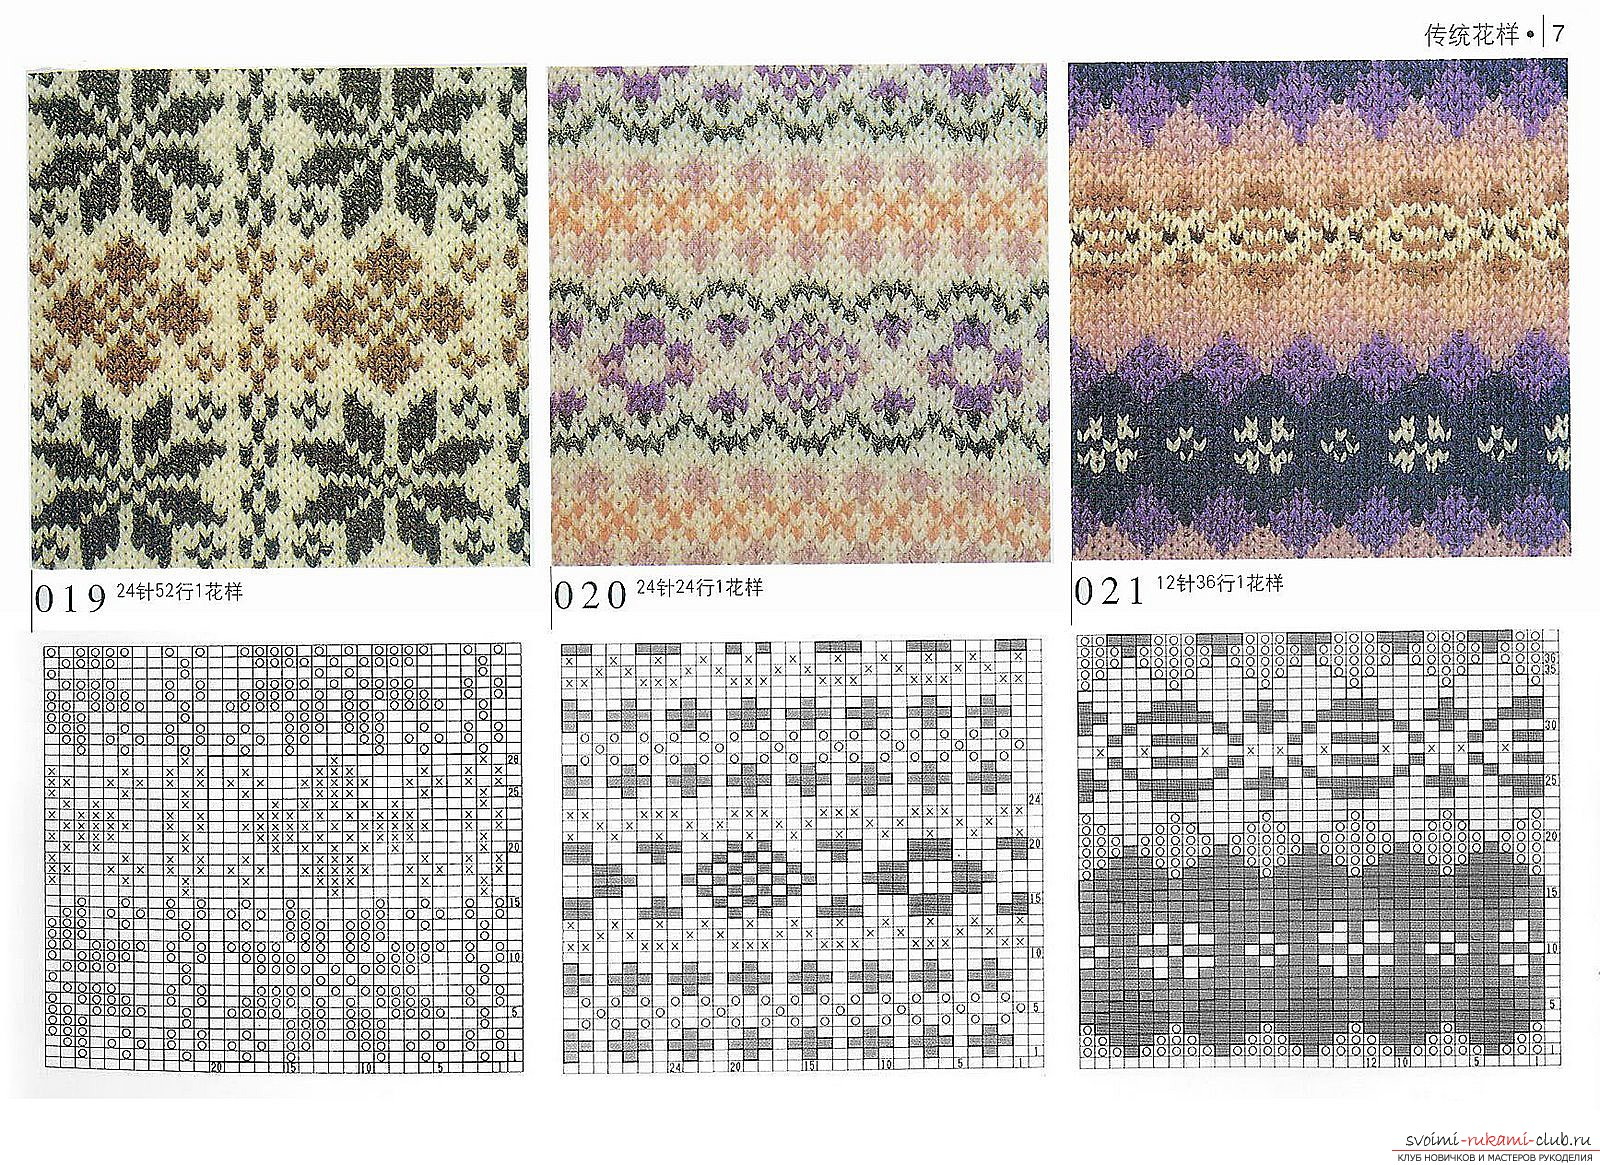 Patterns and patterns for knitting. Photo №6